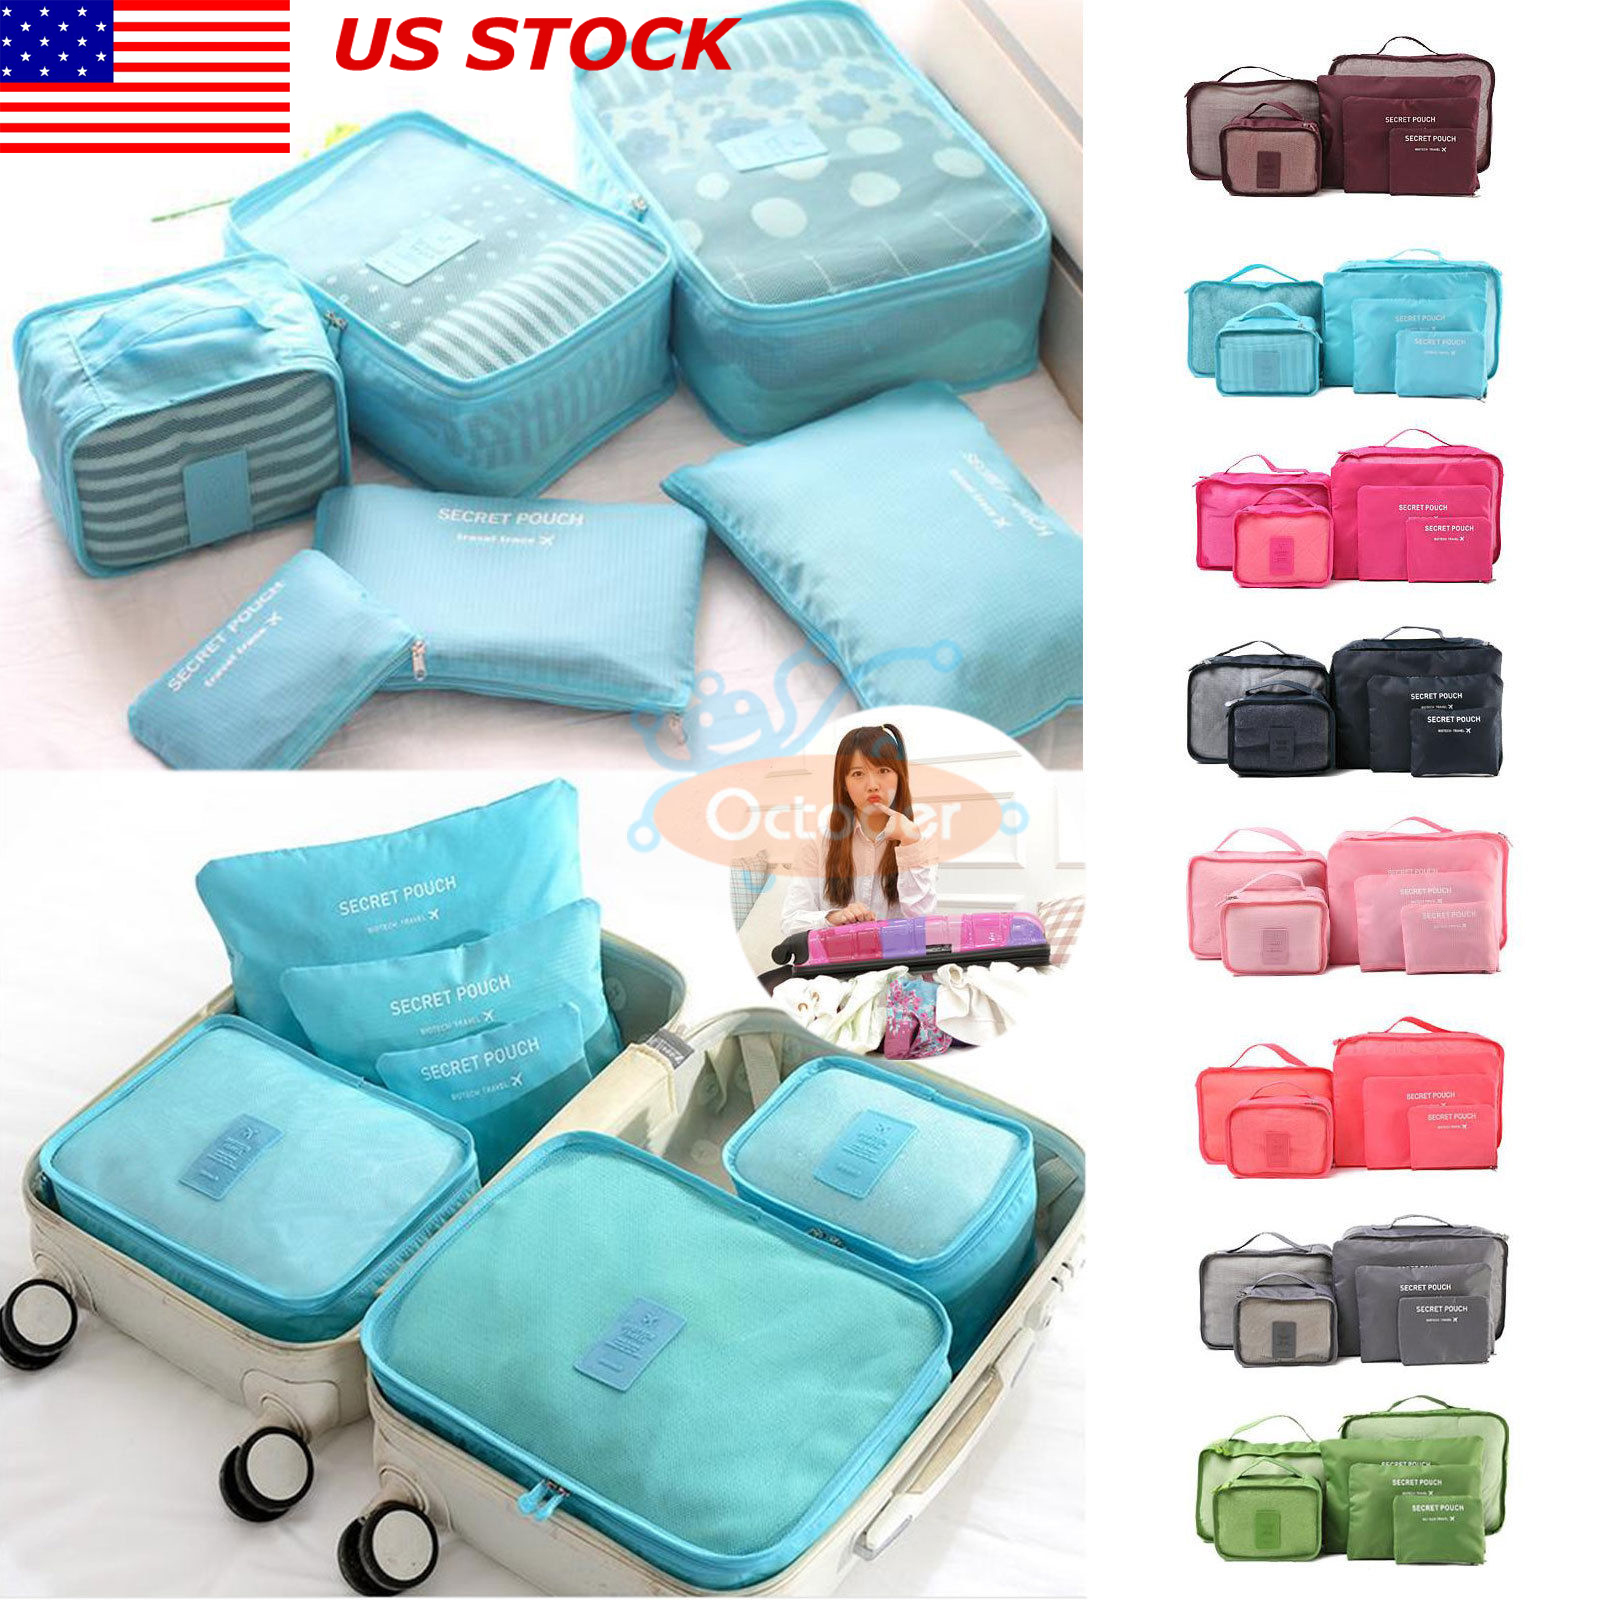 8710404942a Details about US 6Pcs Travel Waterproof Clothes Storage Bags Pack Cube  Luggage Organizer Pouch